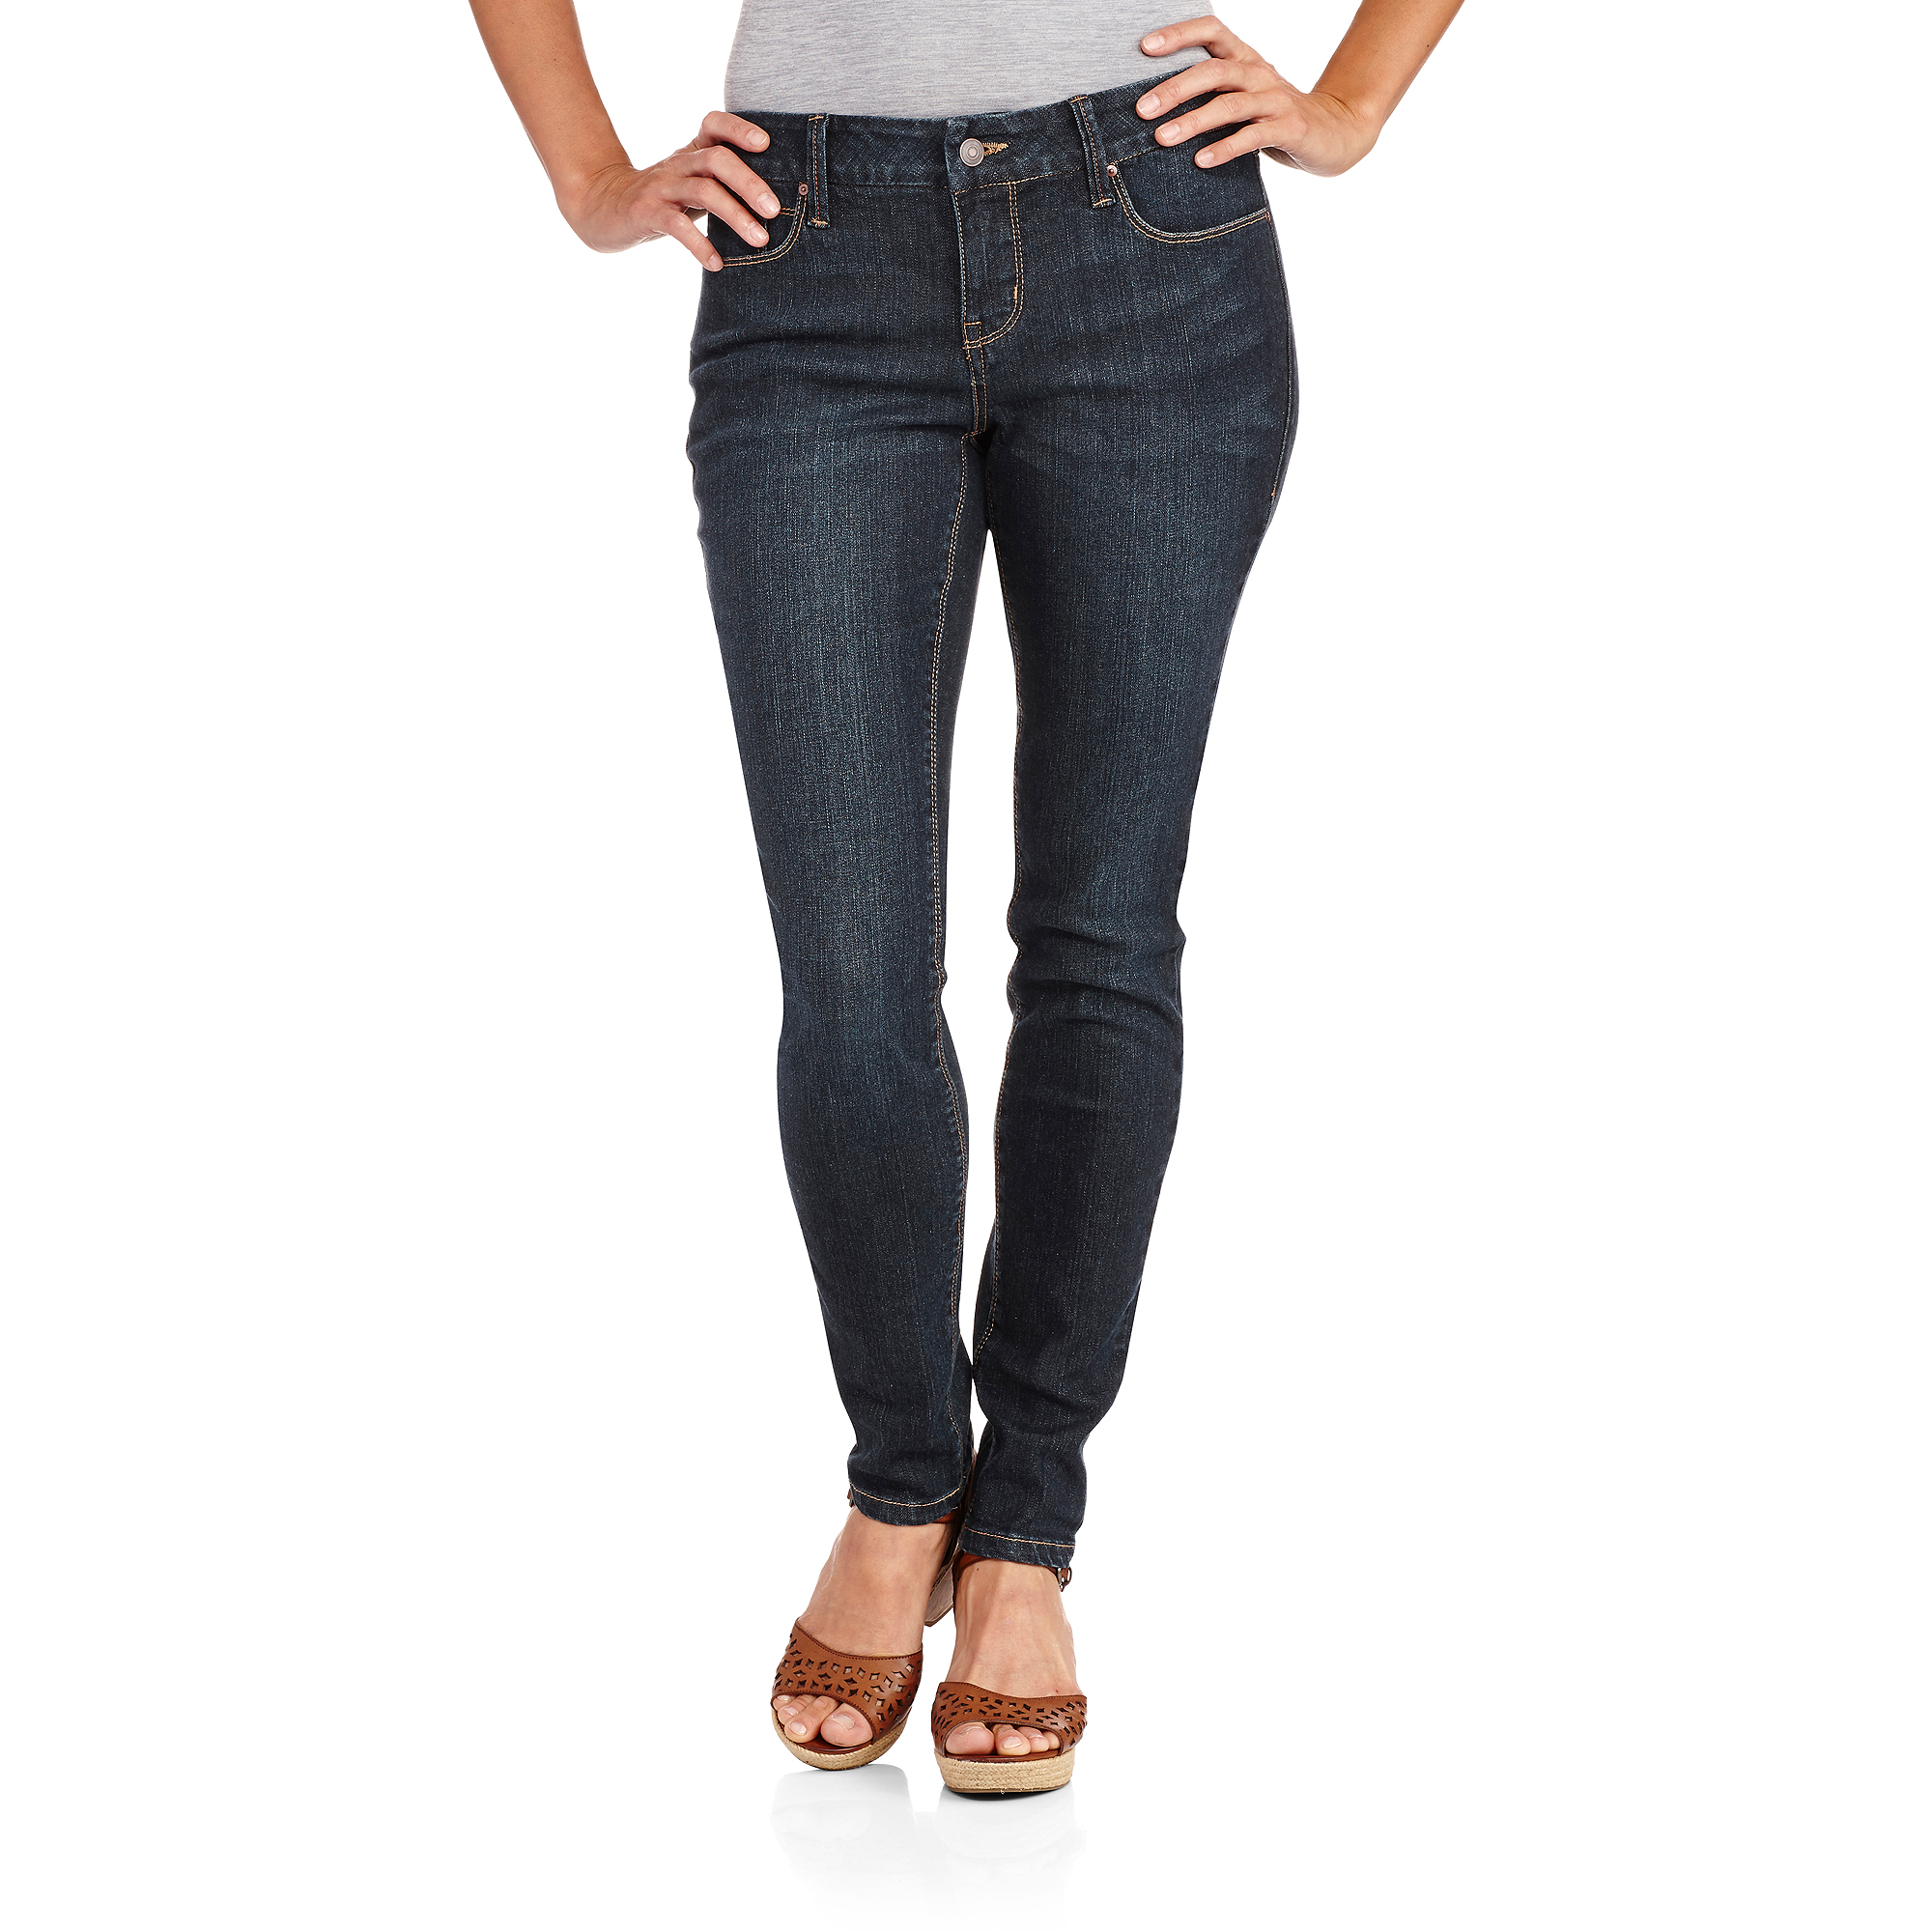 Faded Glory Women's Core Skinny Jeans available in Regular and ...